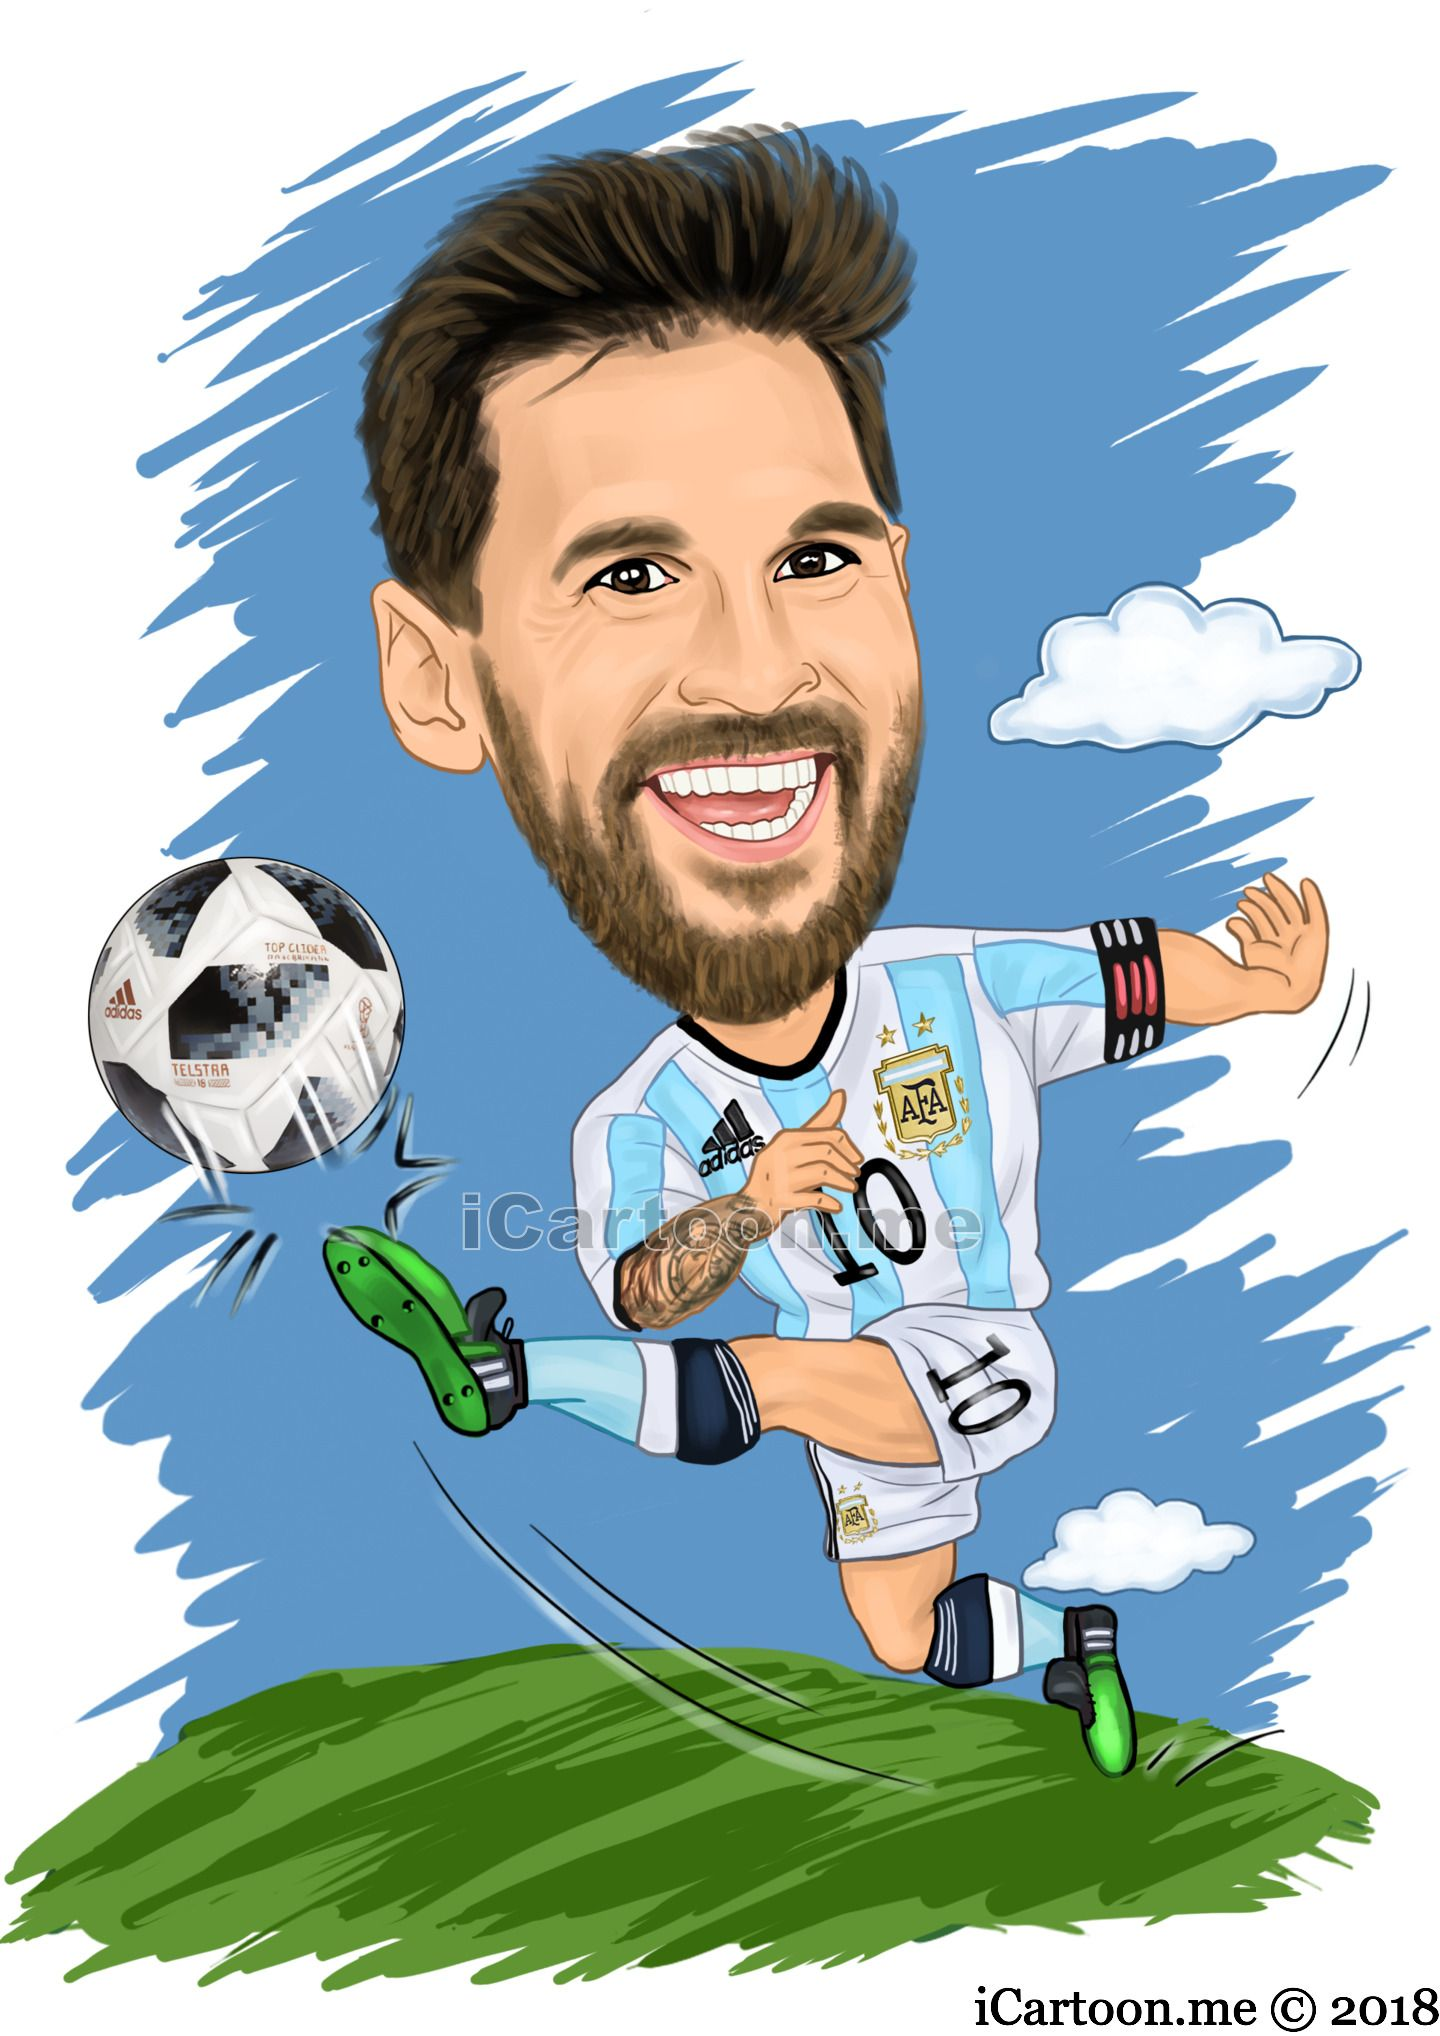 Lionel Messi In The World Cup 2018 Soccer Caricature Caricature Caricature Drawing Lionel Messi